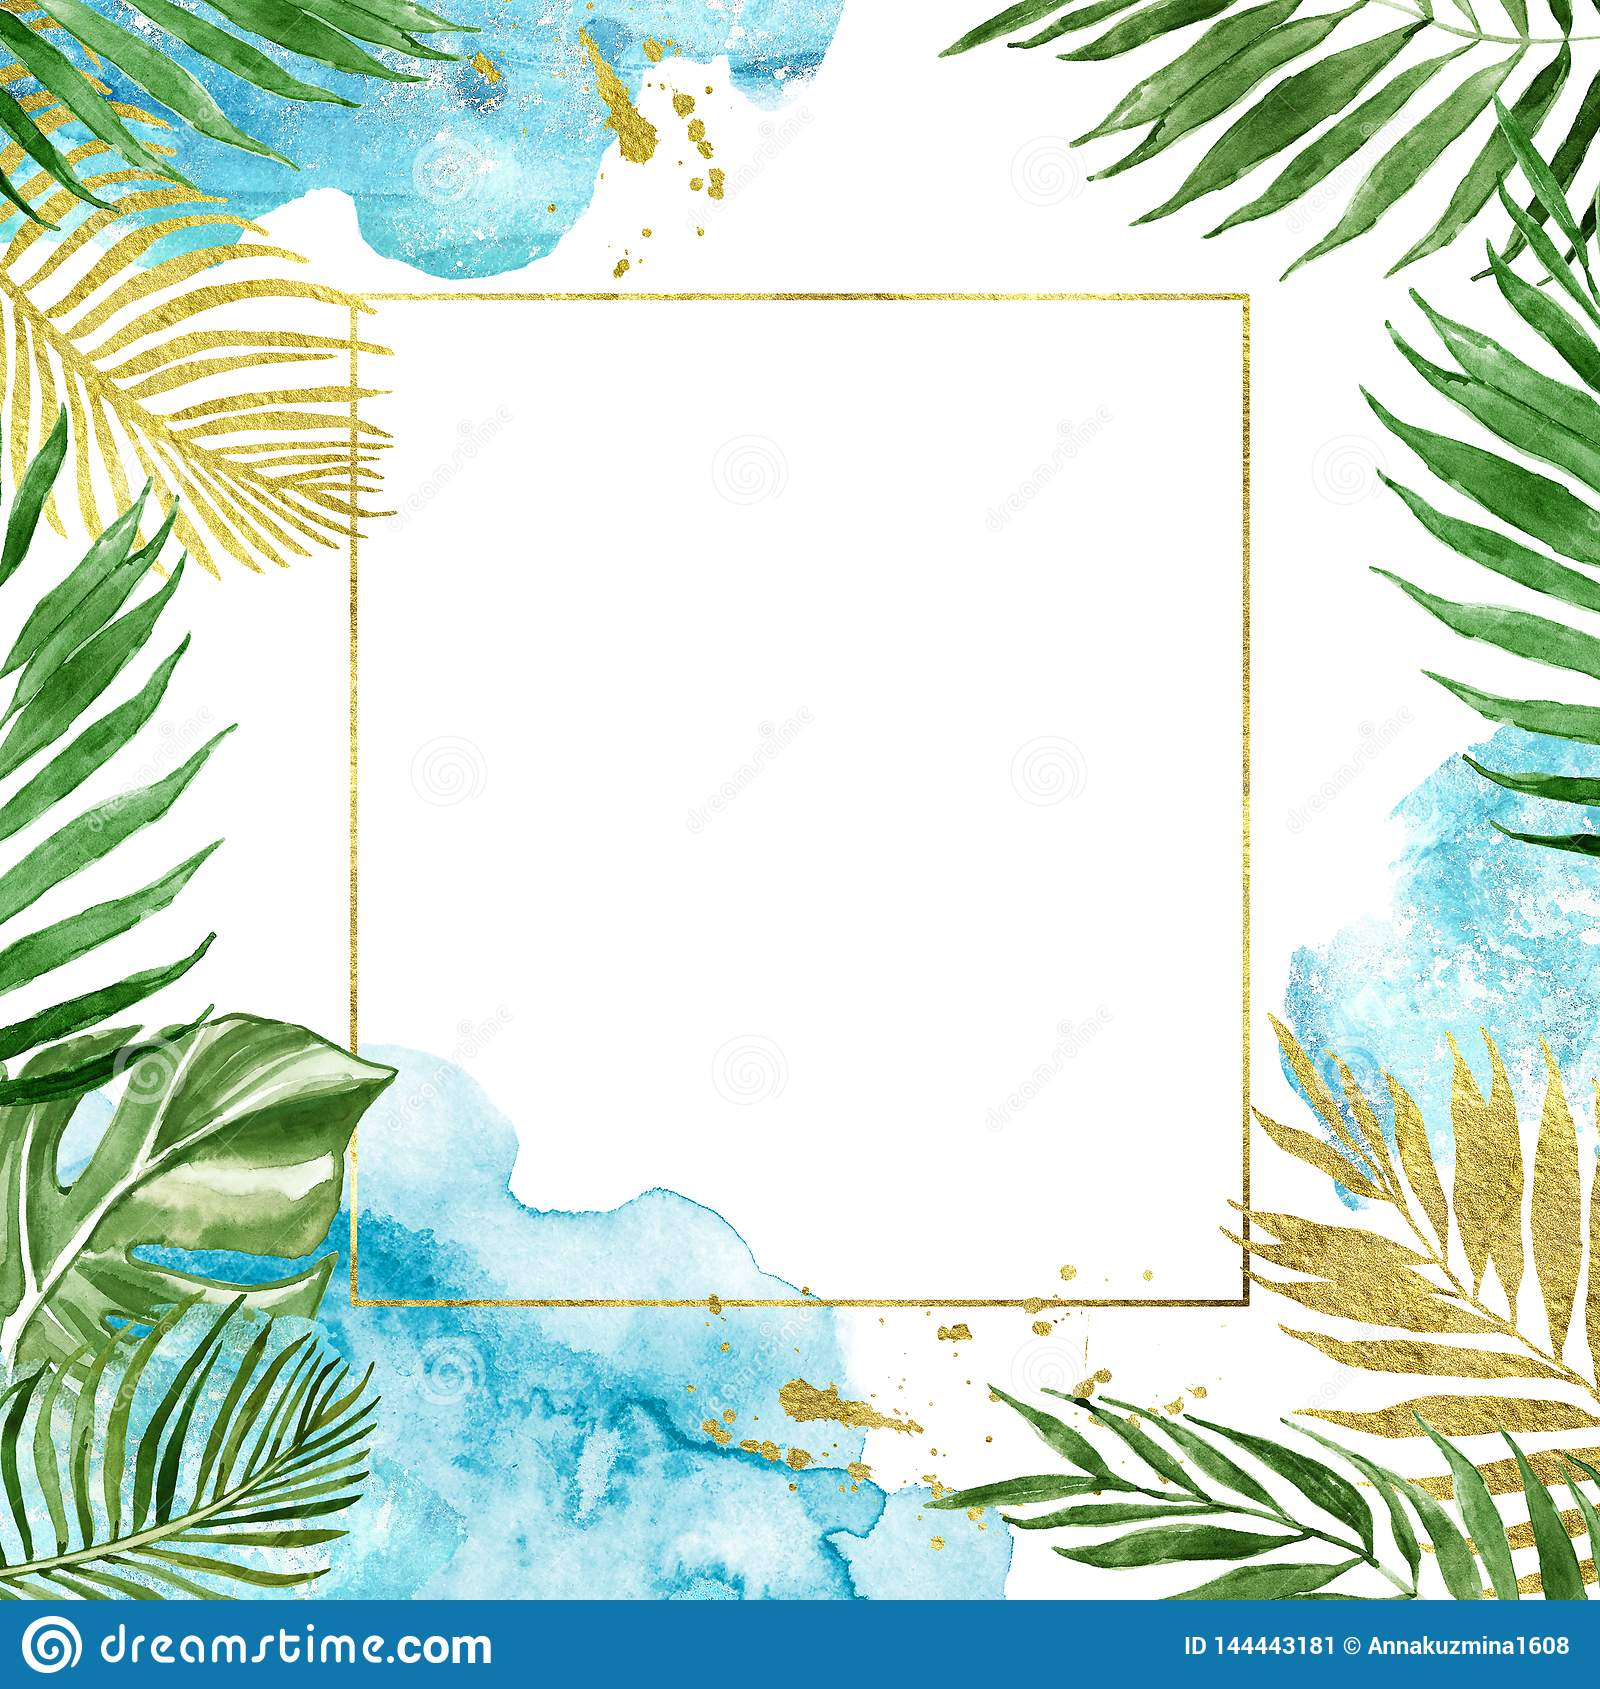 Watercolor floral geometric gold frame with tropical leaves isolated